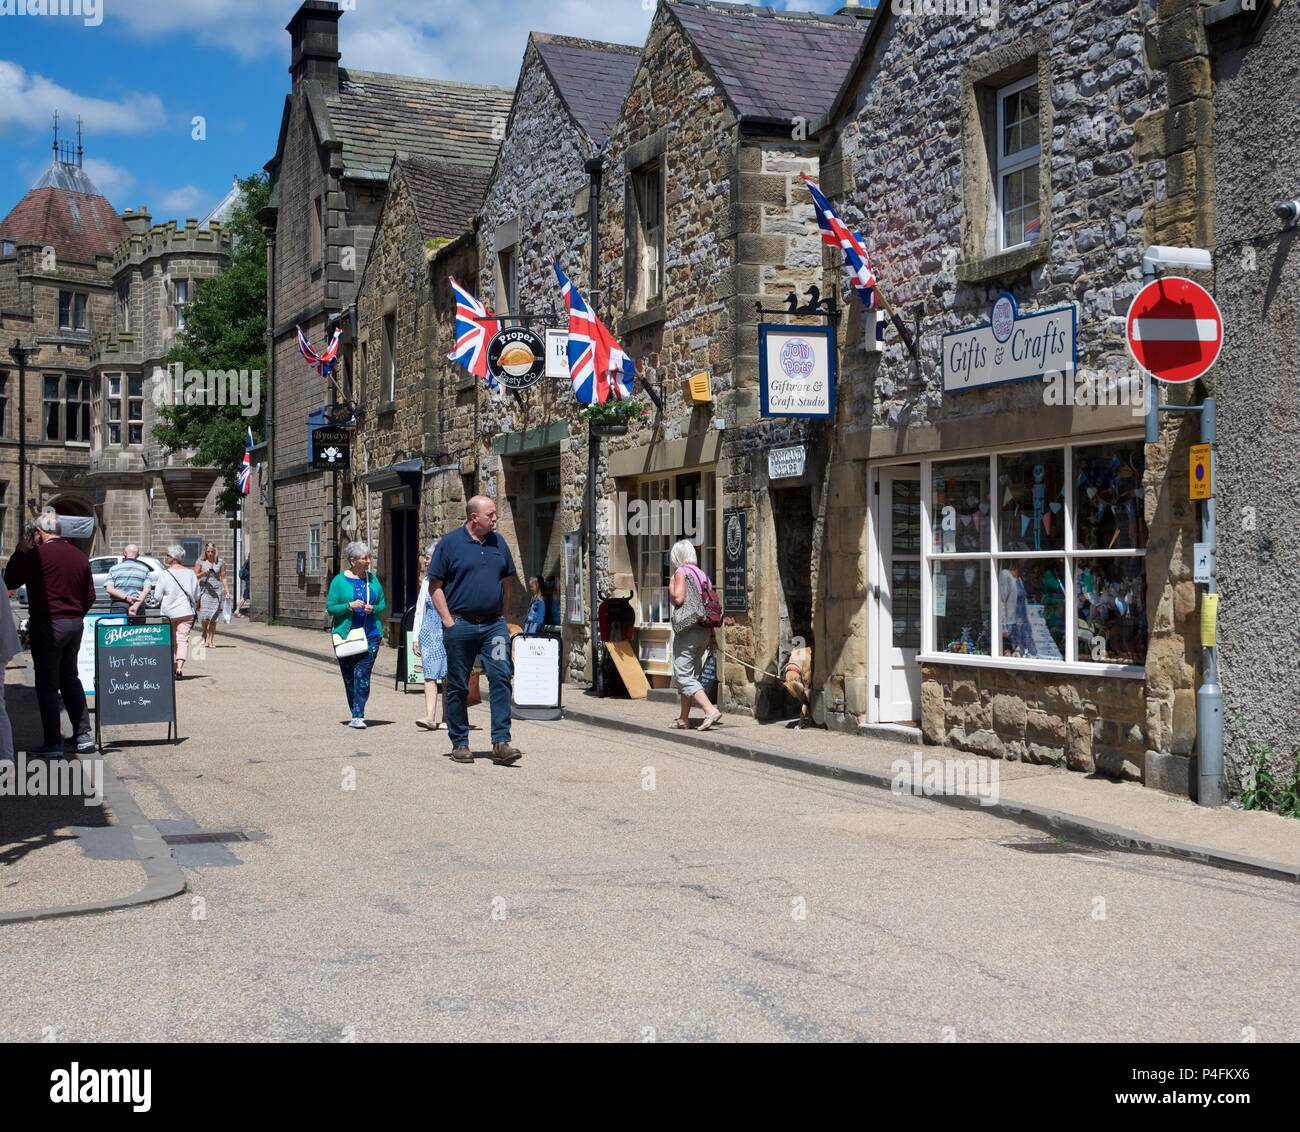 A street in Bakewell,  Derbyshire  UK - Stock Image